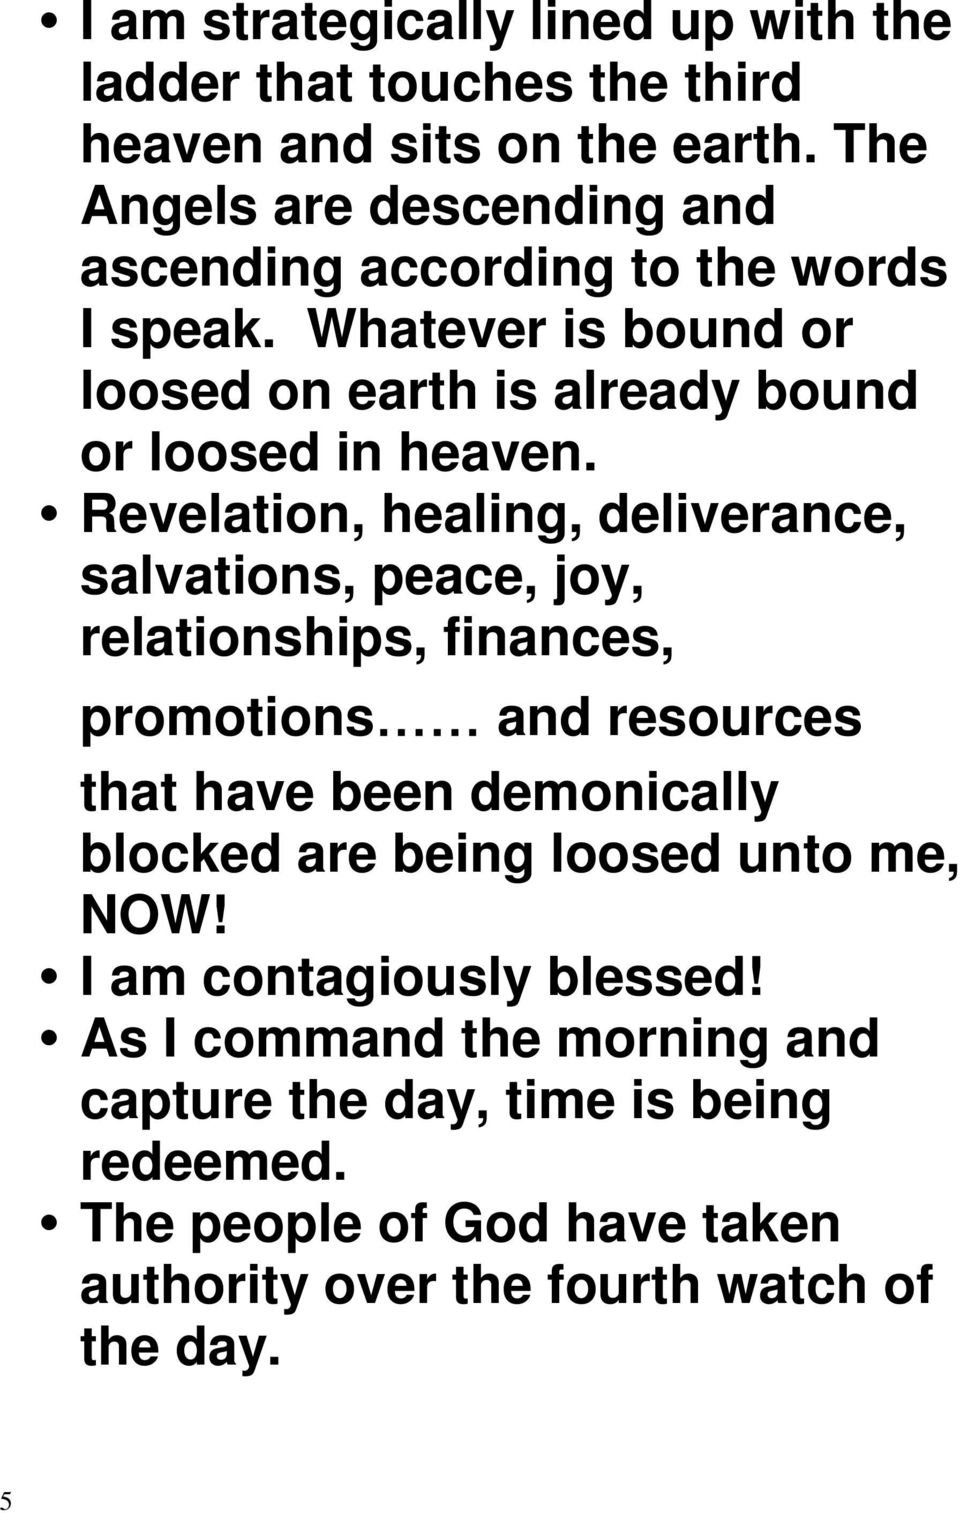 Revelation, healing, deliverance, salvations, peace, joy, relationships, finances, promotions and resources that have been demonically blocked are